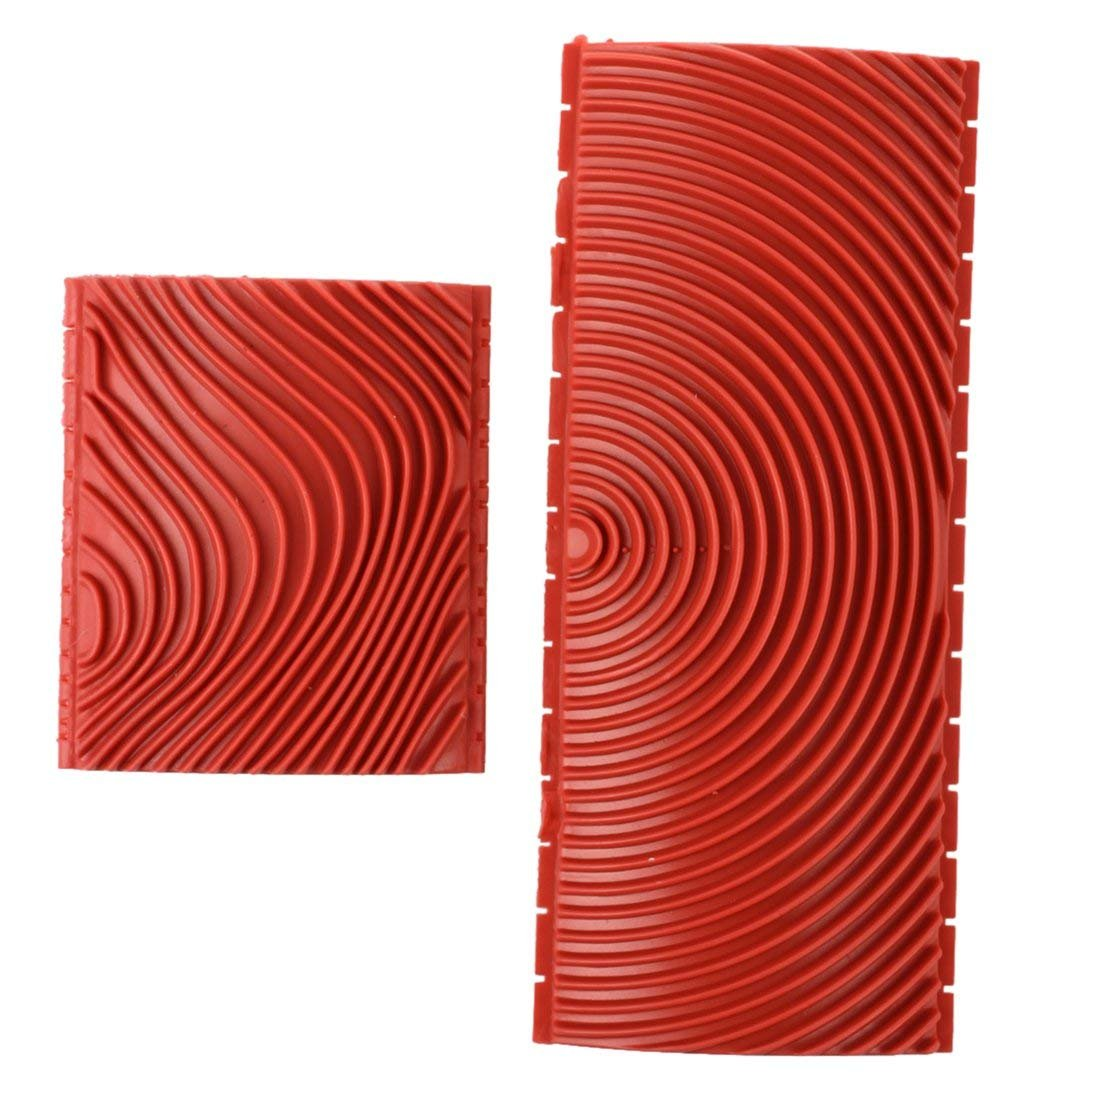 DD Goods 2Pcs Rubber Wood Grain, Household Wall Art Paint Silicone Rubber Wood Graining DIY Tool Set